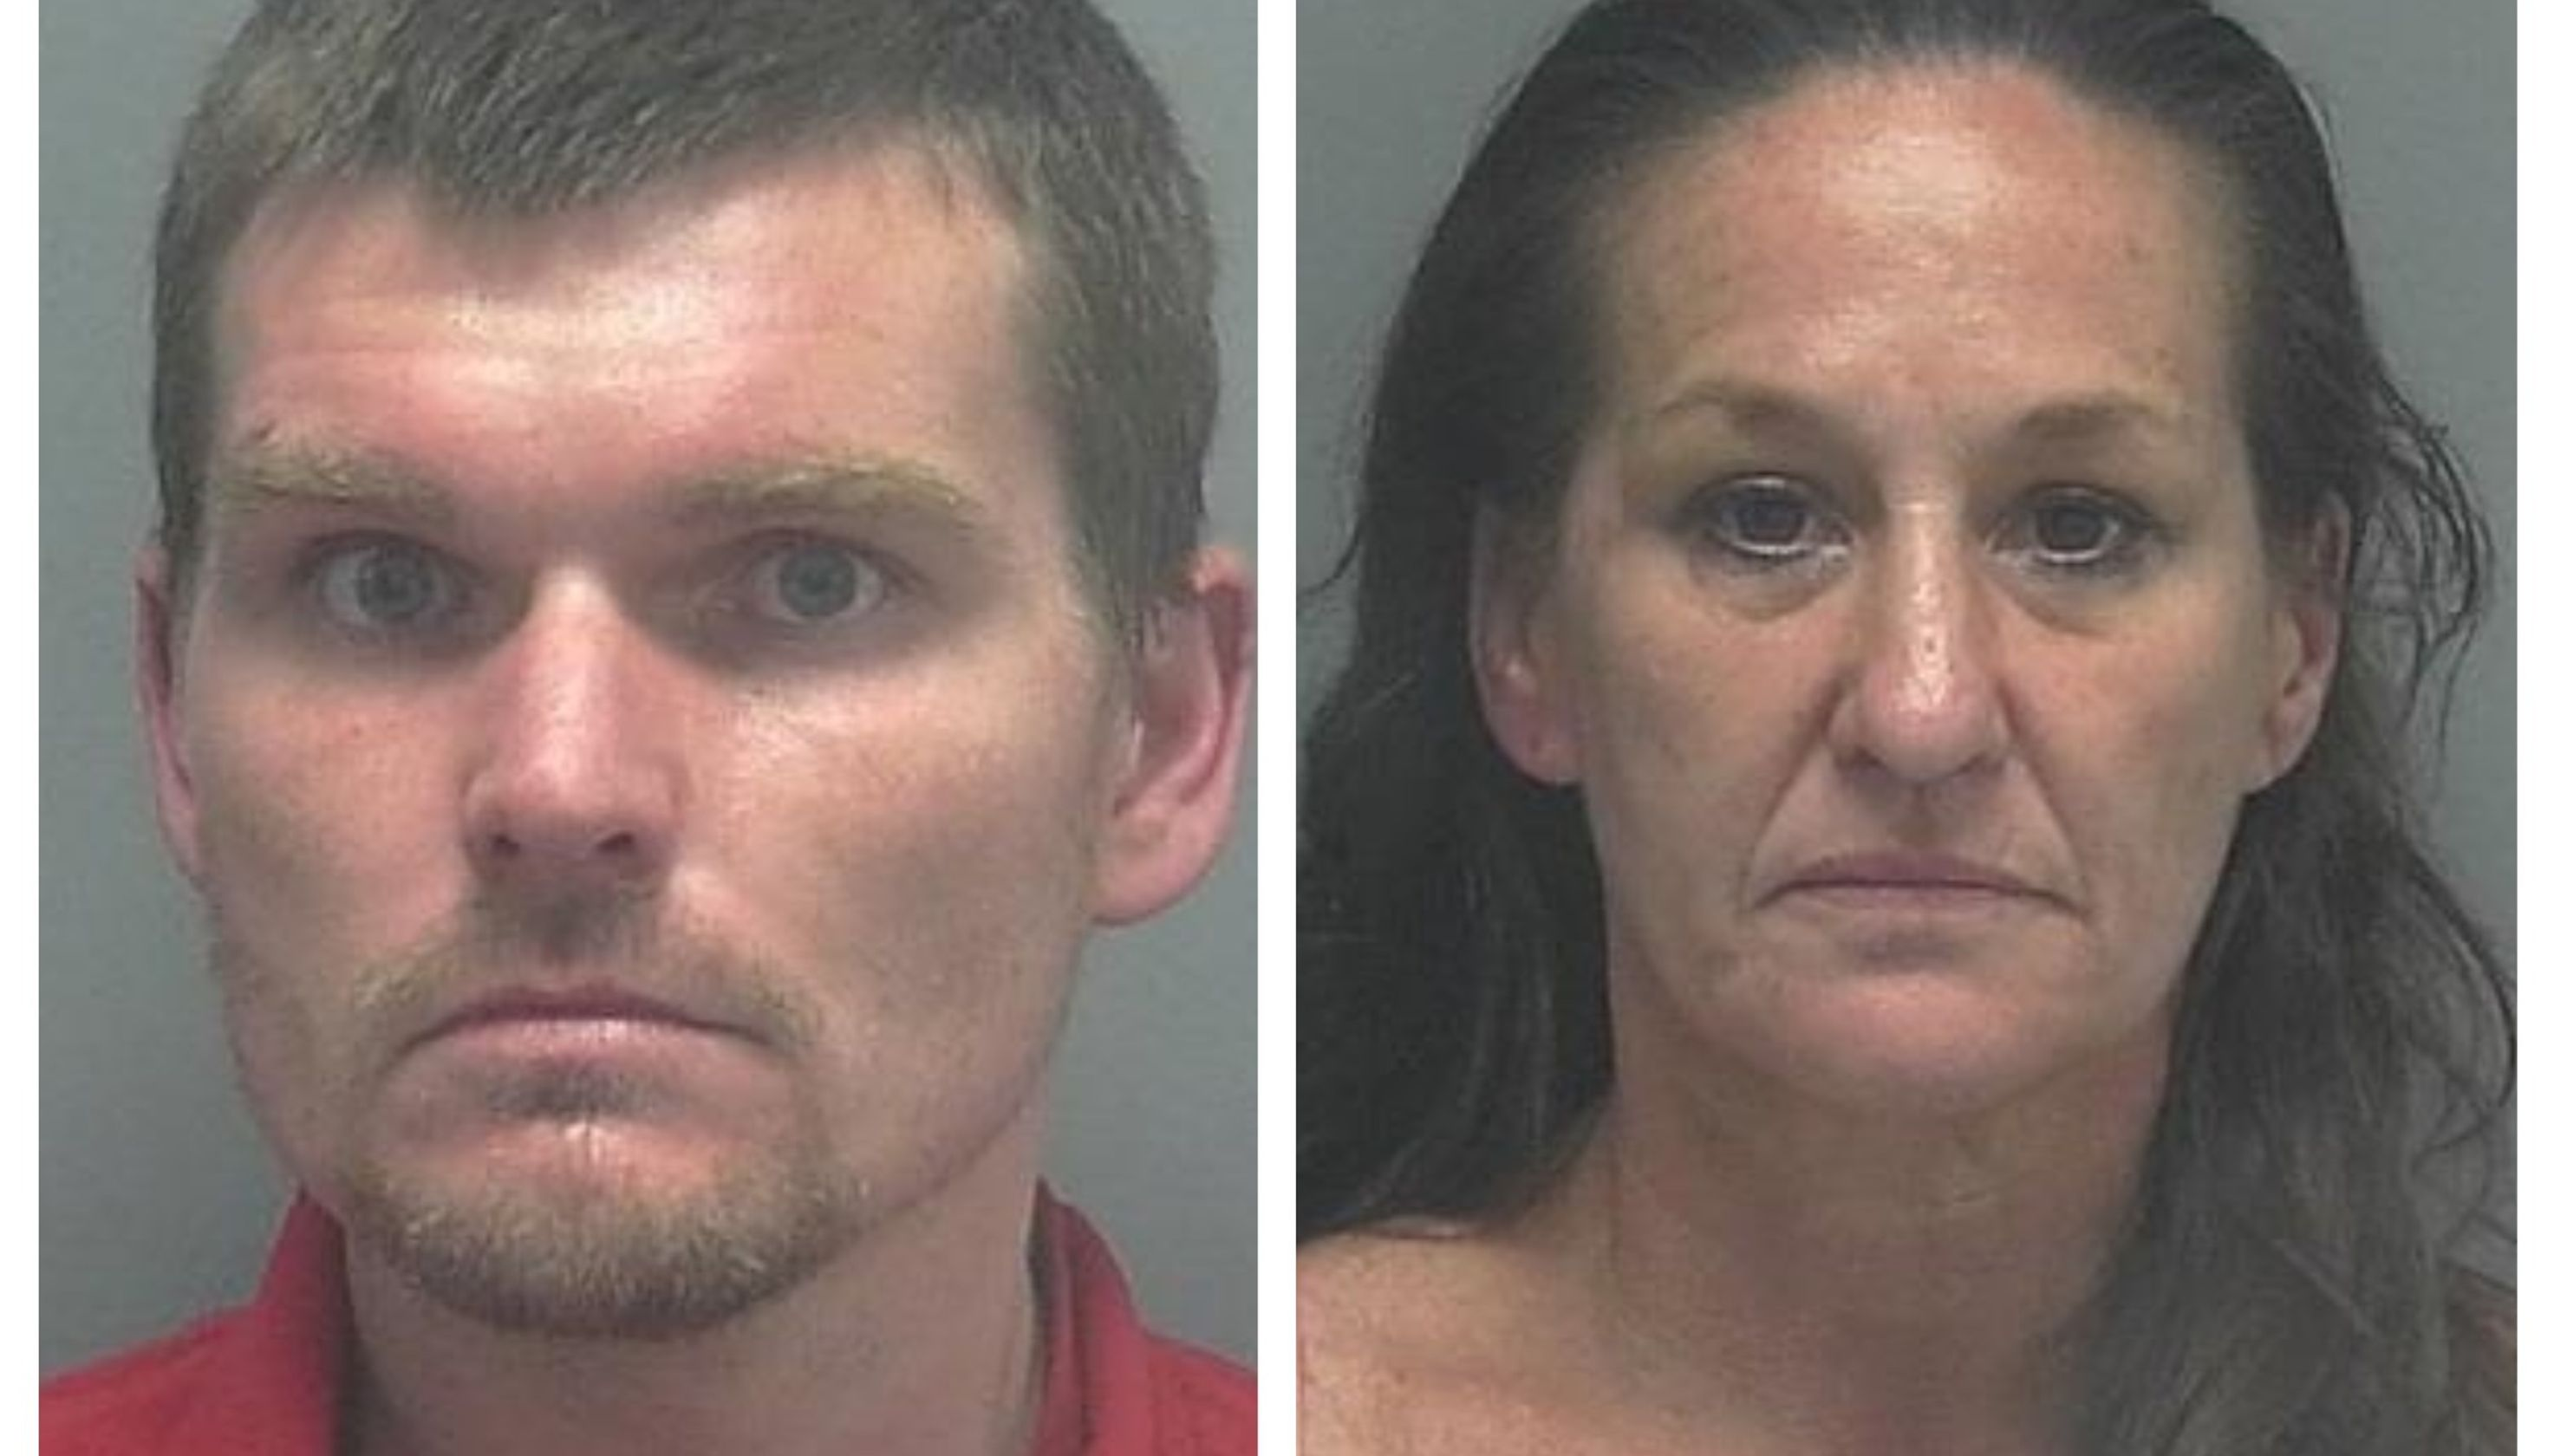 Estero couple face drug trafficking charges, meth, fentanyl found